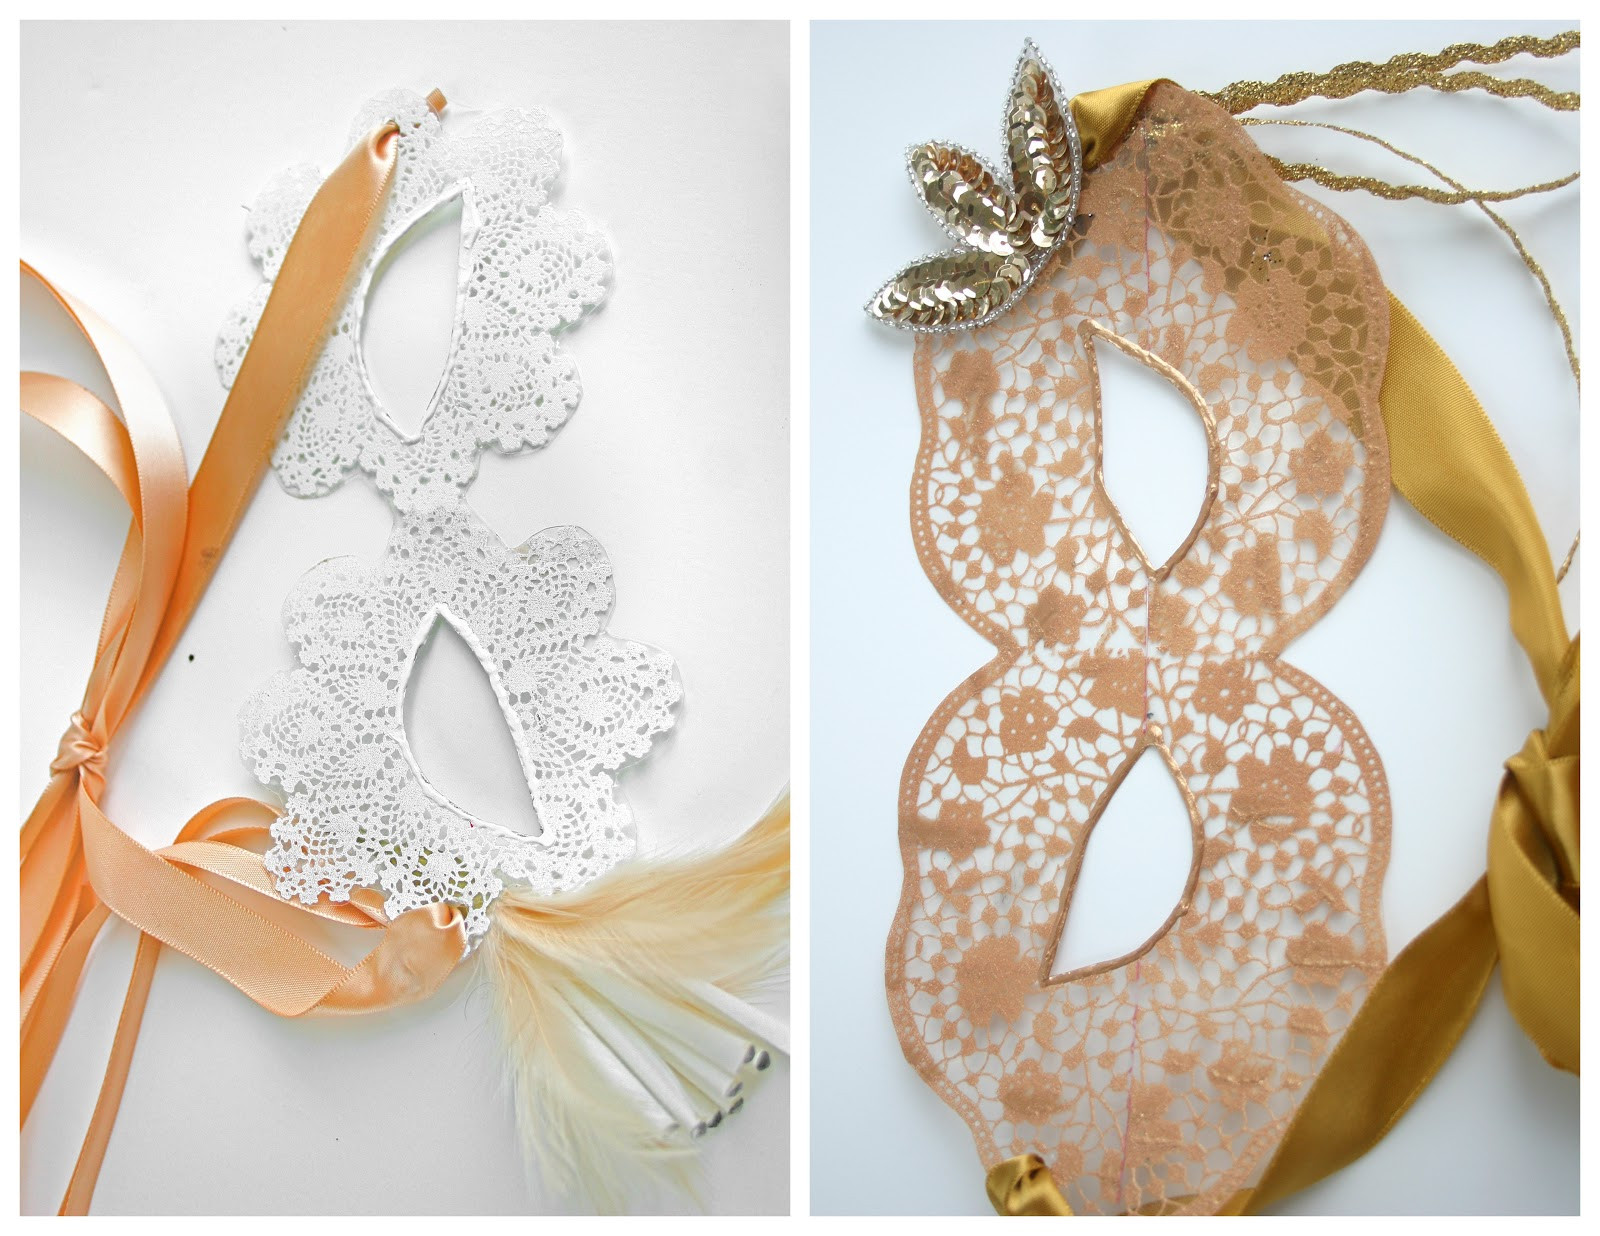 Best ideas about DIY Masquerade Masks . Save or Pin Grosgrain DIY Paintable Faux Lace Masquerade Masks Now.